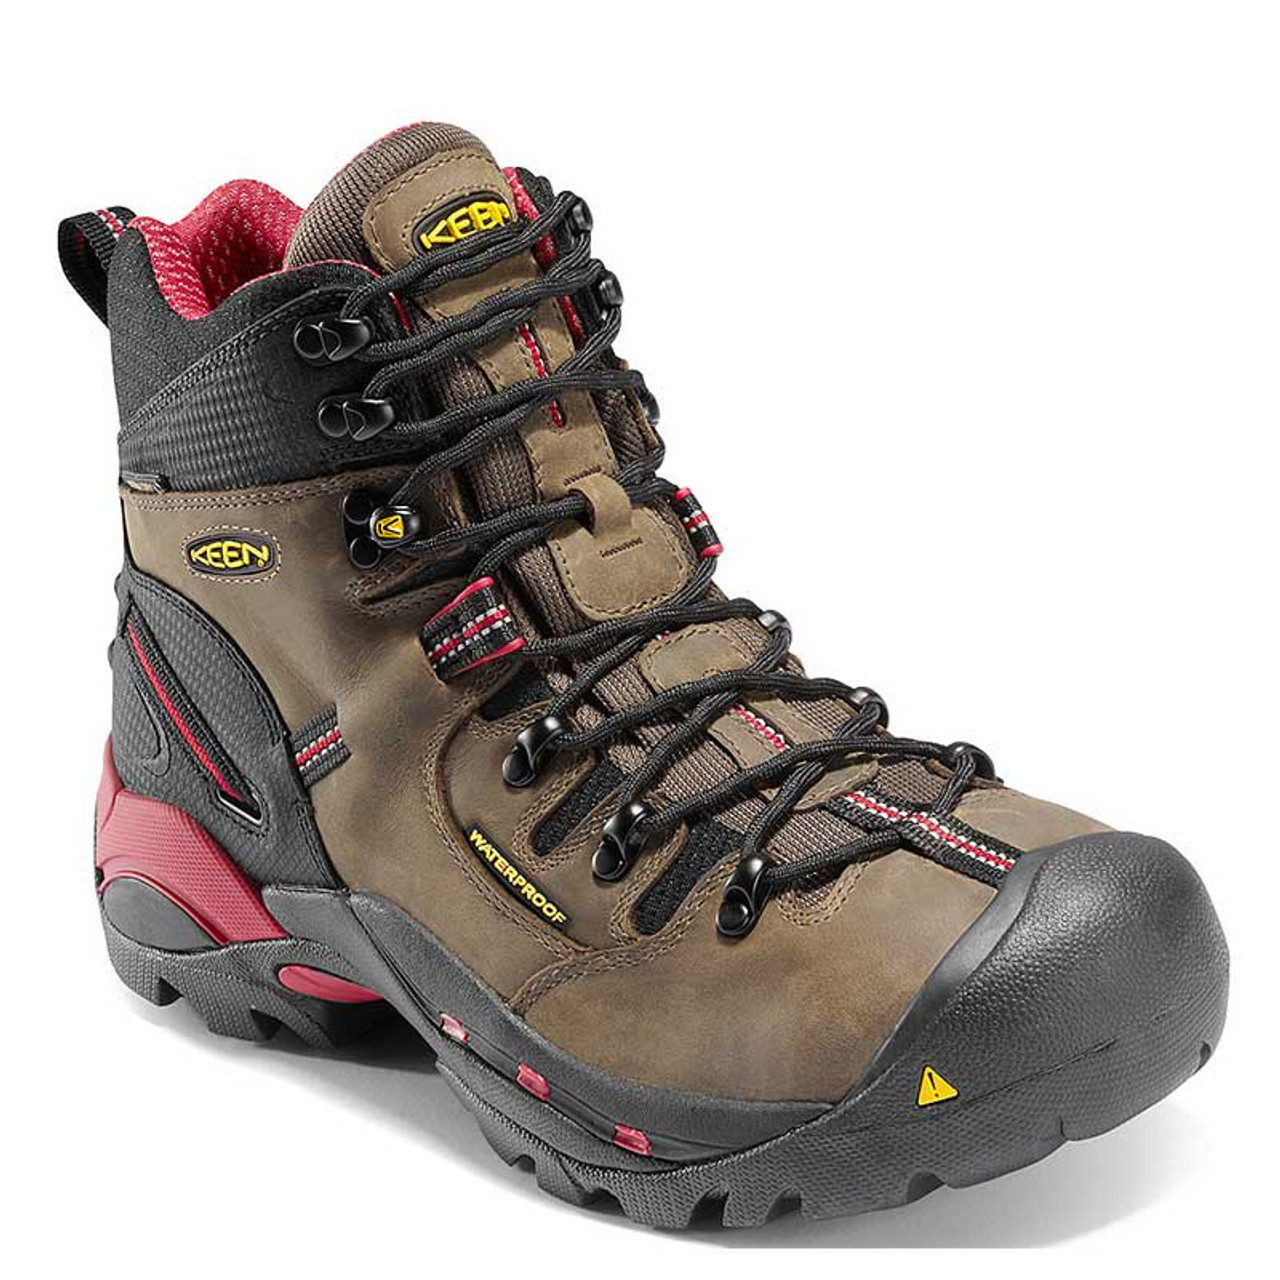 1dcfd6e5d77 Keen Utility 1007024 PITTSBURGH Steel Toe Non-Insulated Work Boots